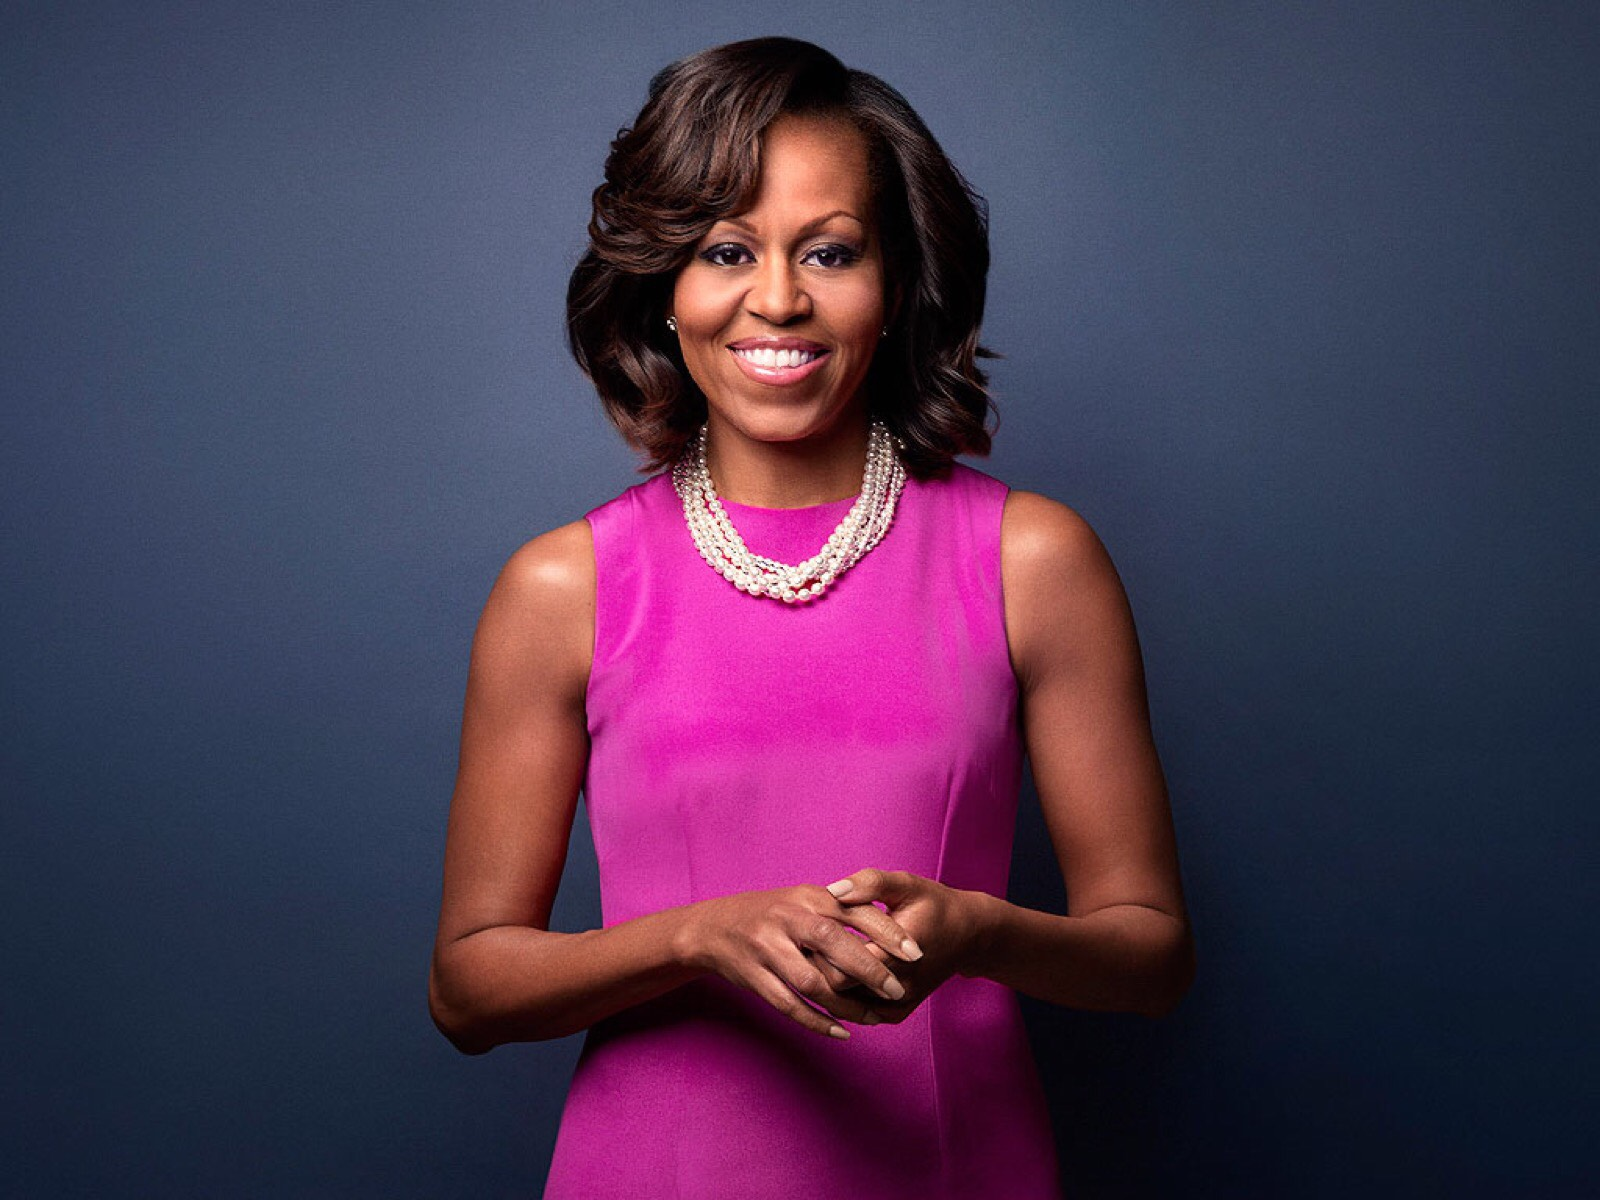 Michelle Obama to Developers: Make Room for Women in Tech